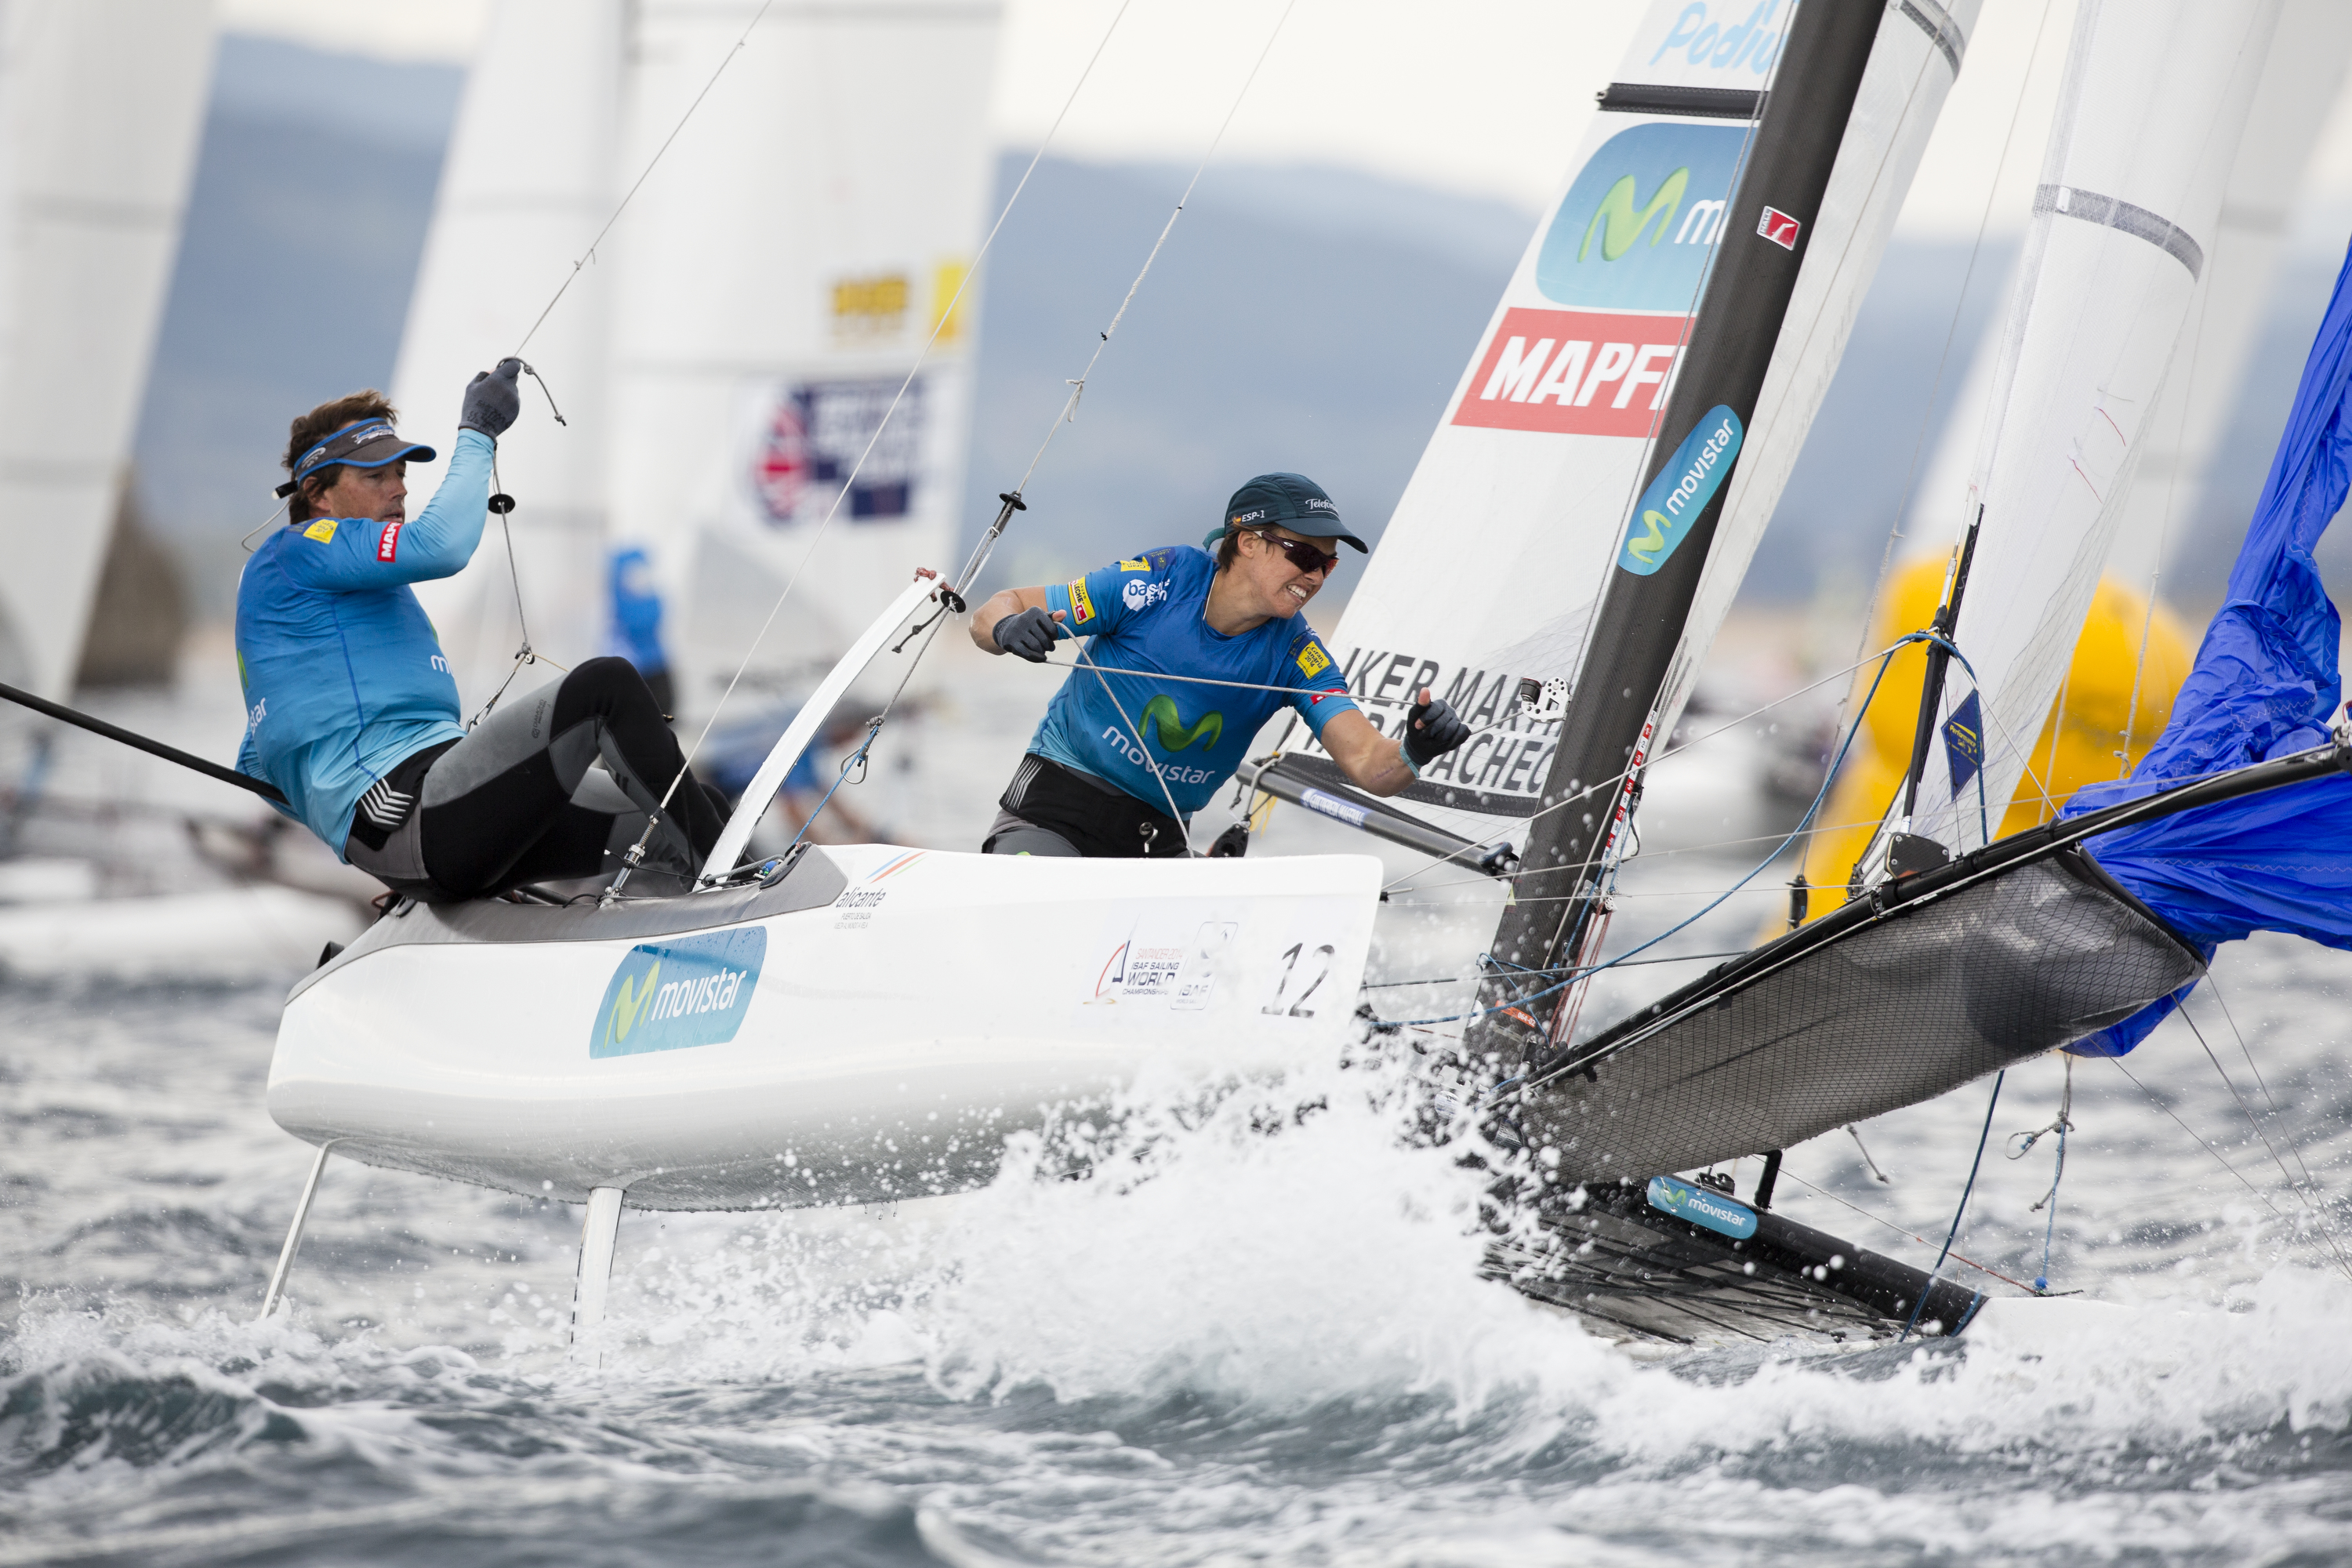 Tara Pacheco during the 2014 ISAF Sailing World Championships in in Santander, Spain.